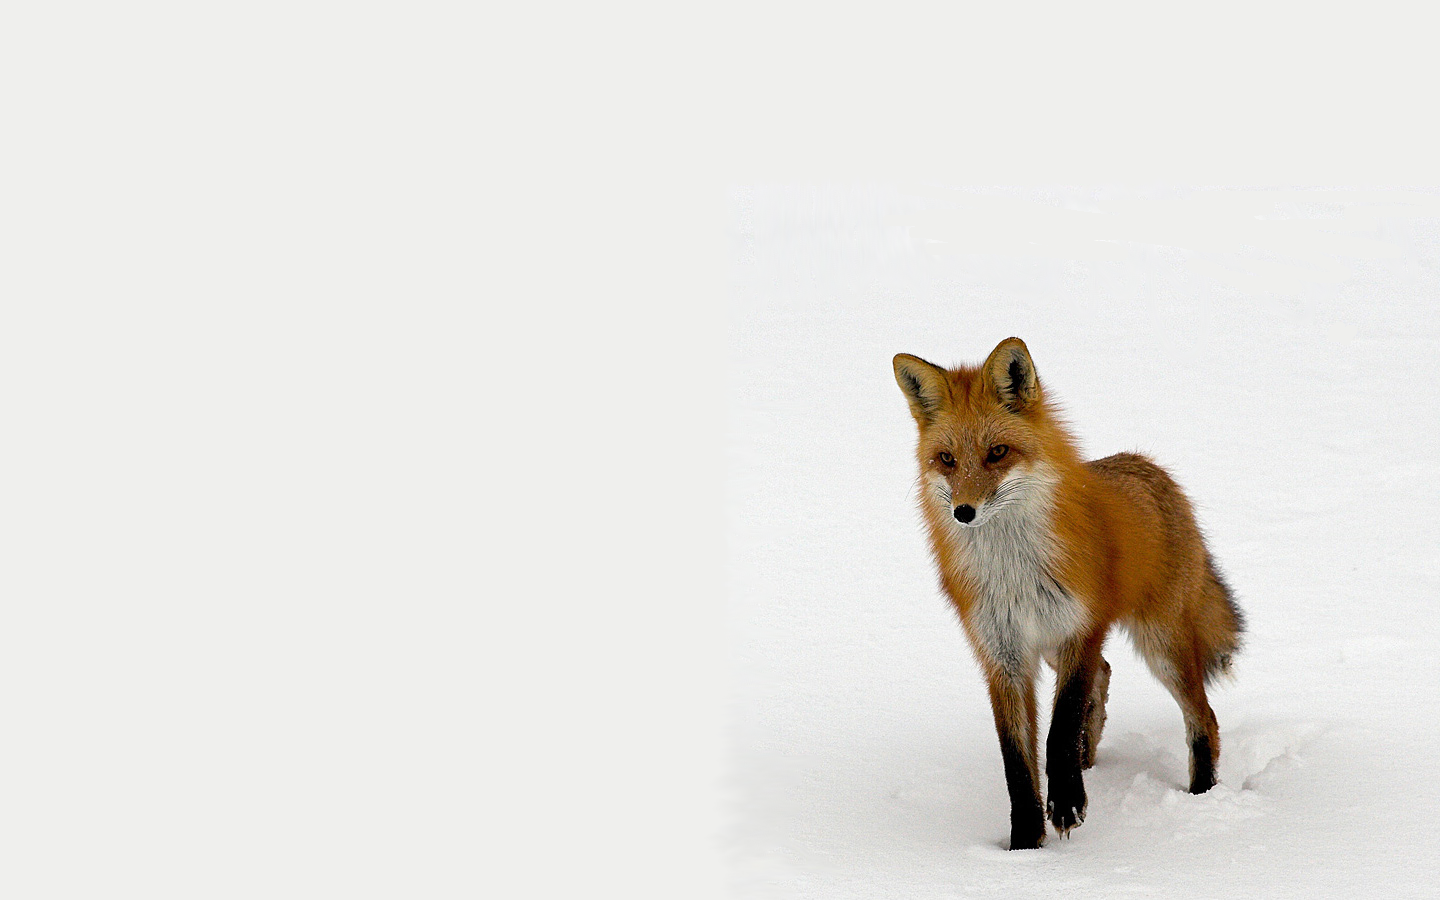 Animal - Fox Animal Wildlife Wallpaper - Animal HD PNG